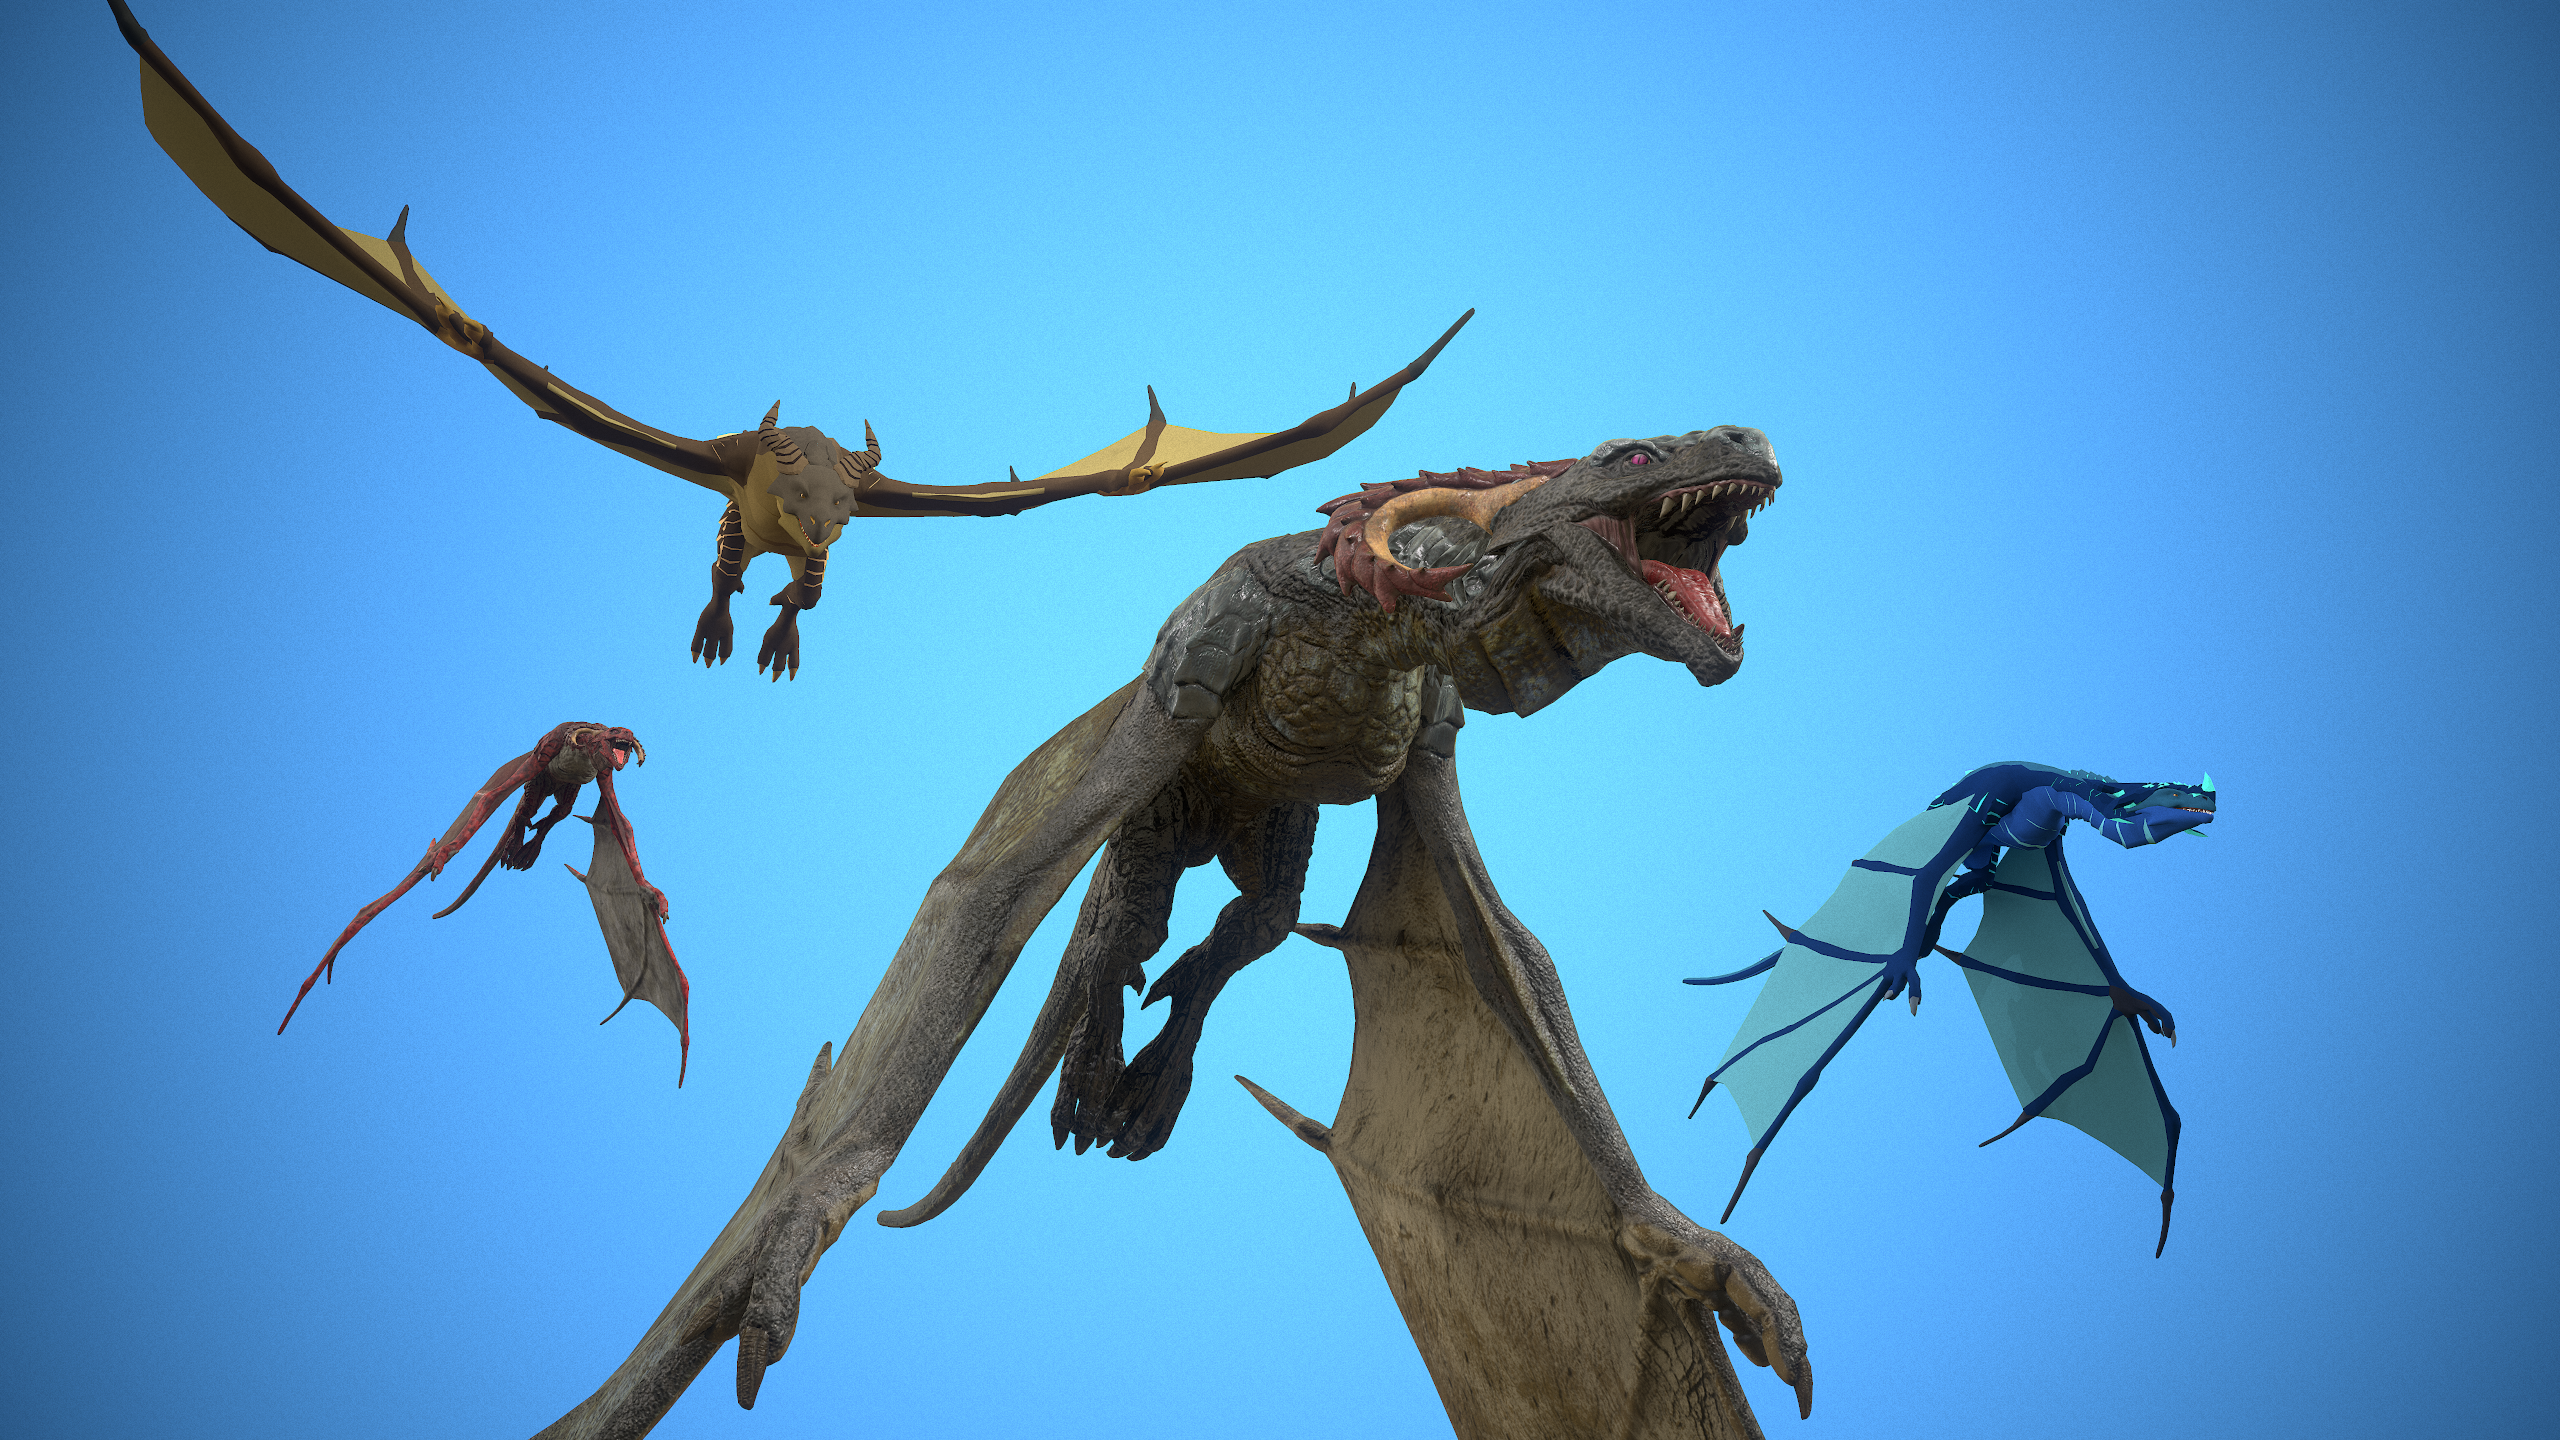 Irval the Wyvern